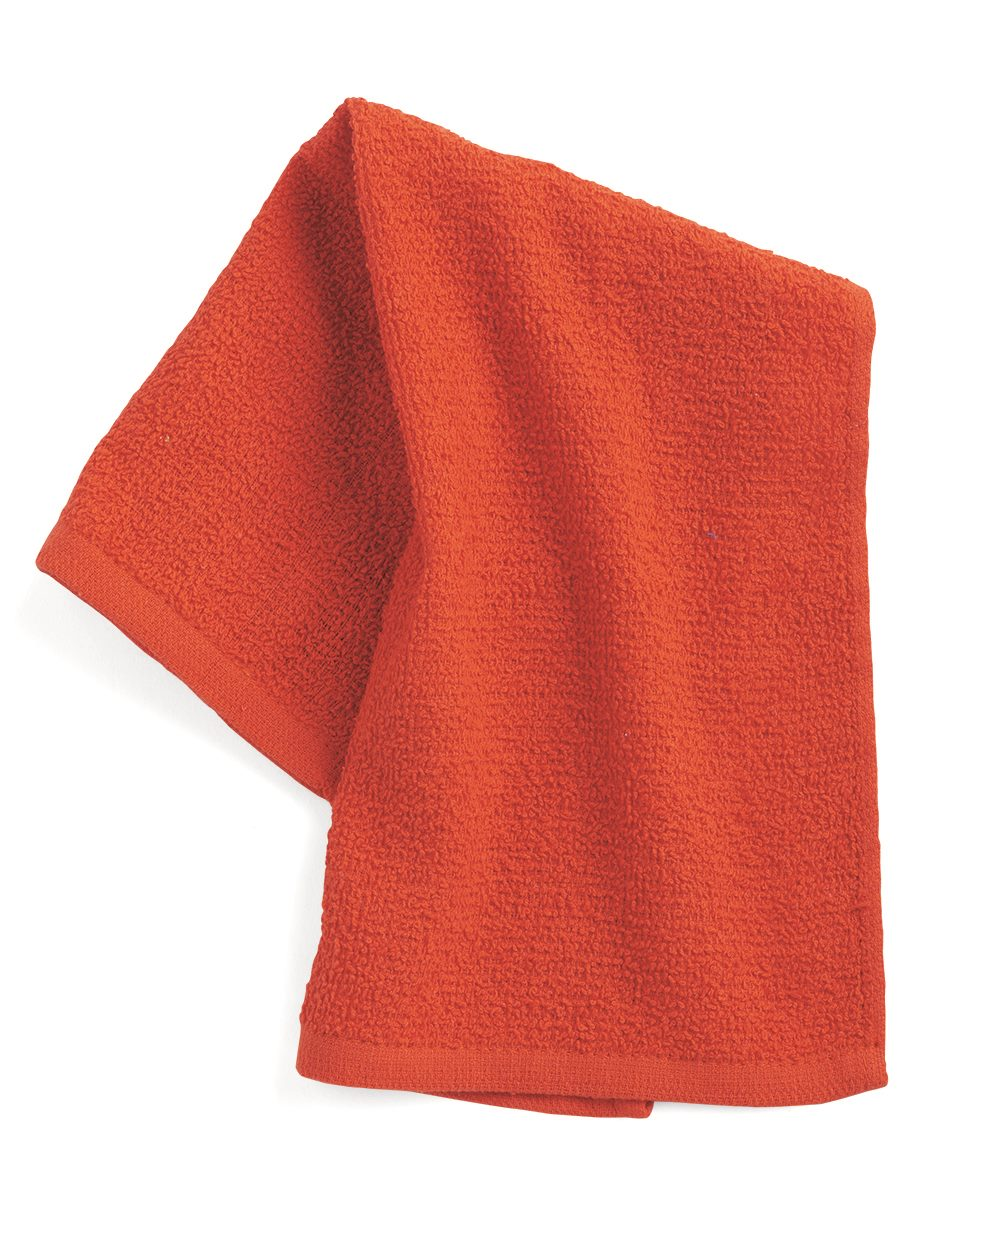 Q-Tees T18 - Budget Rally Towel